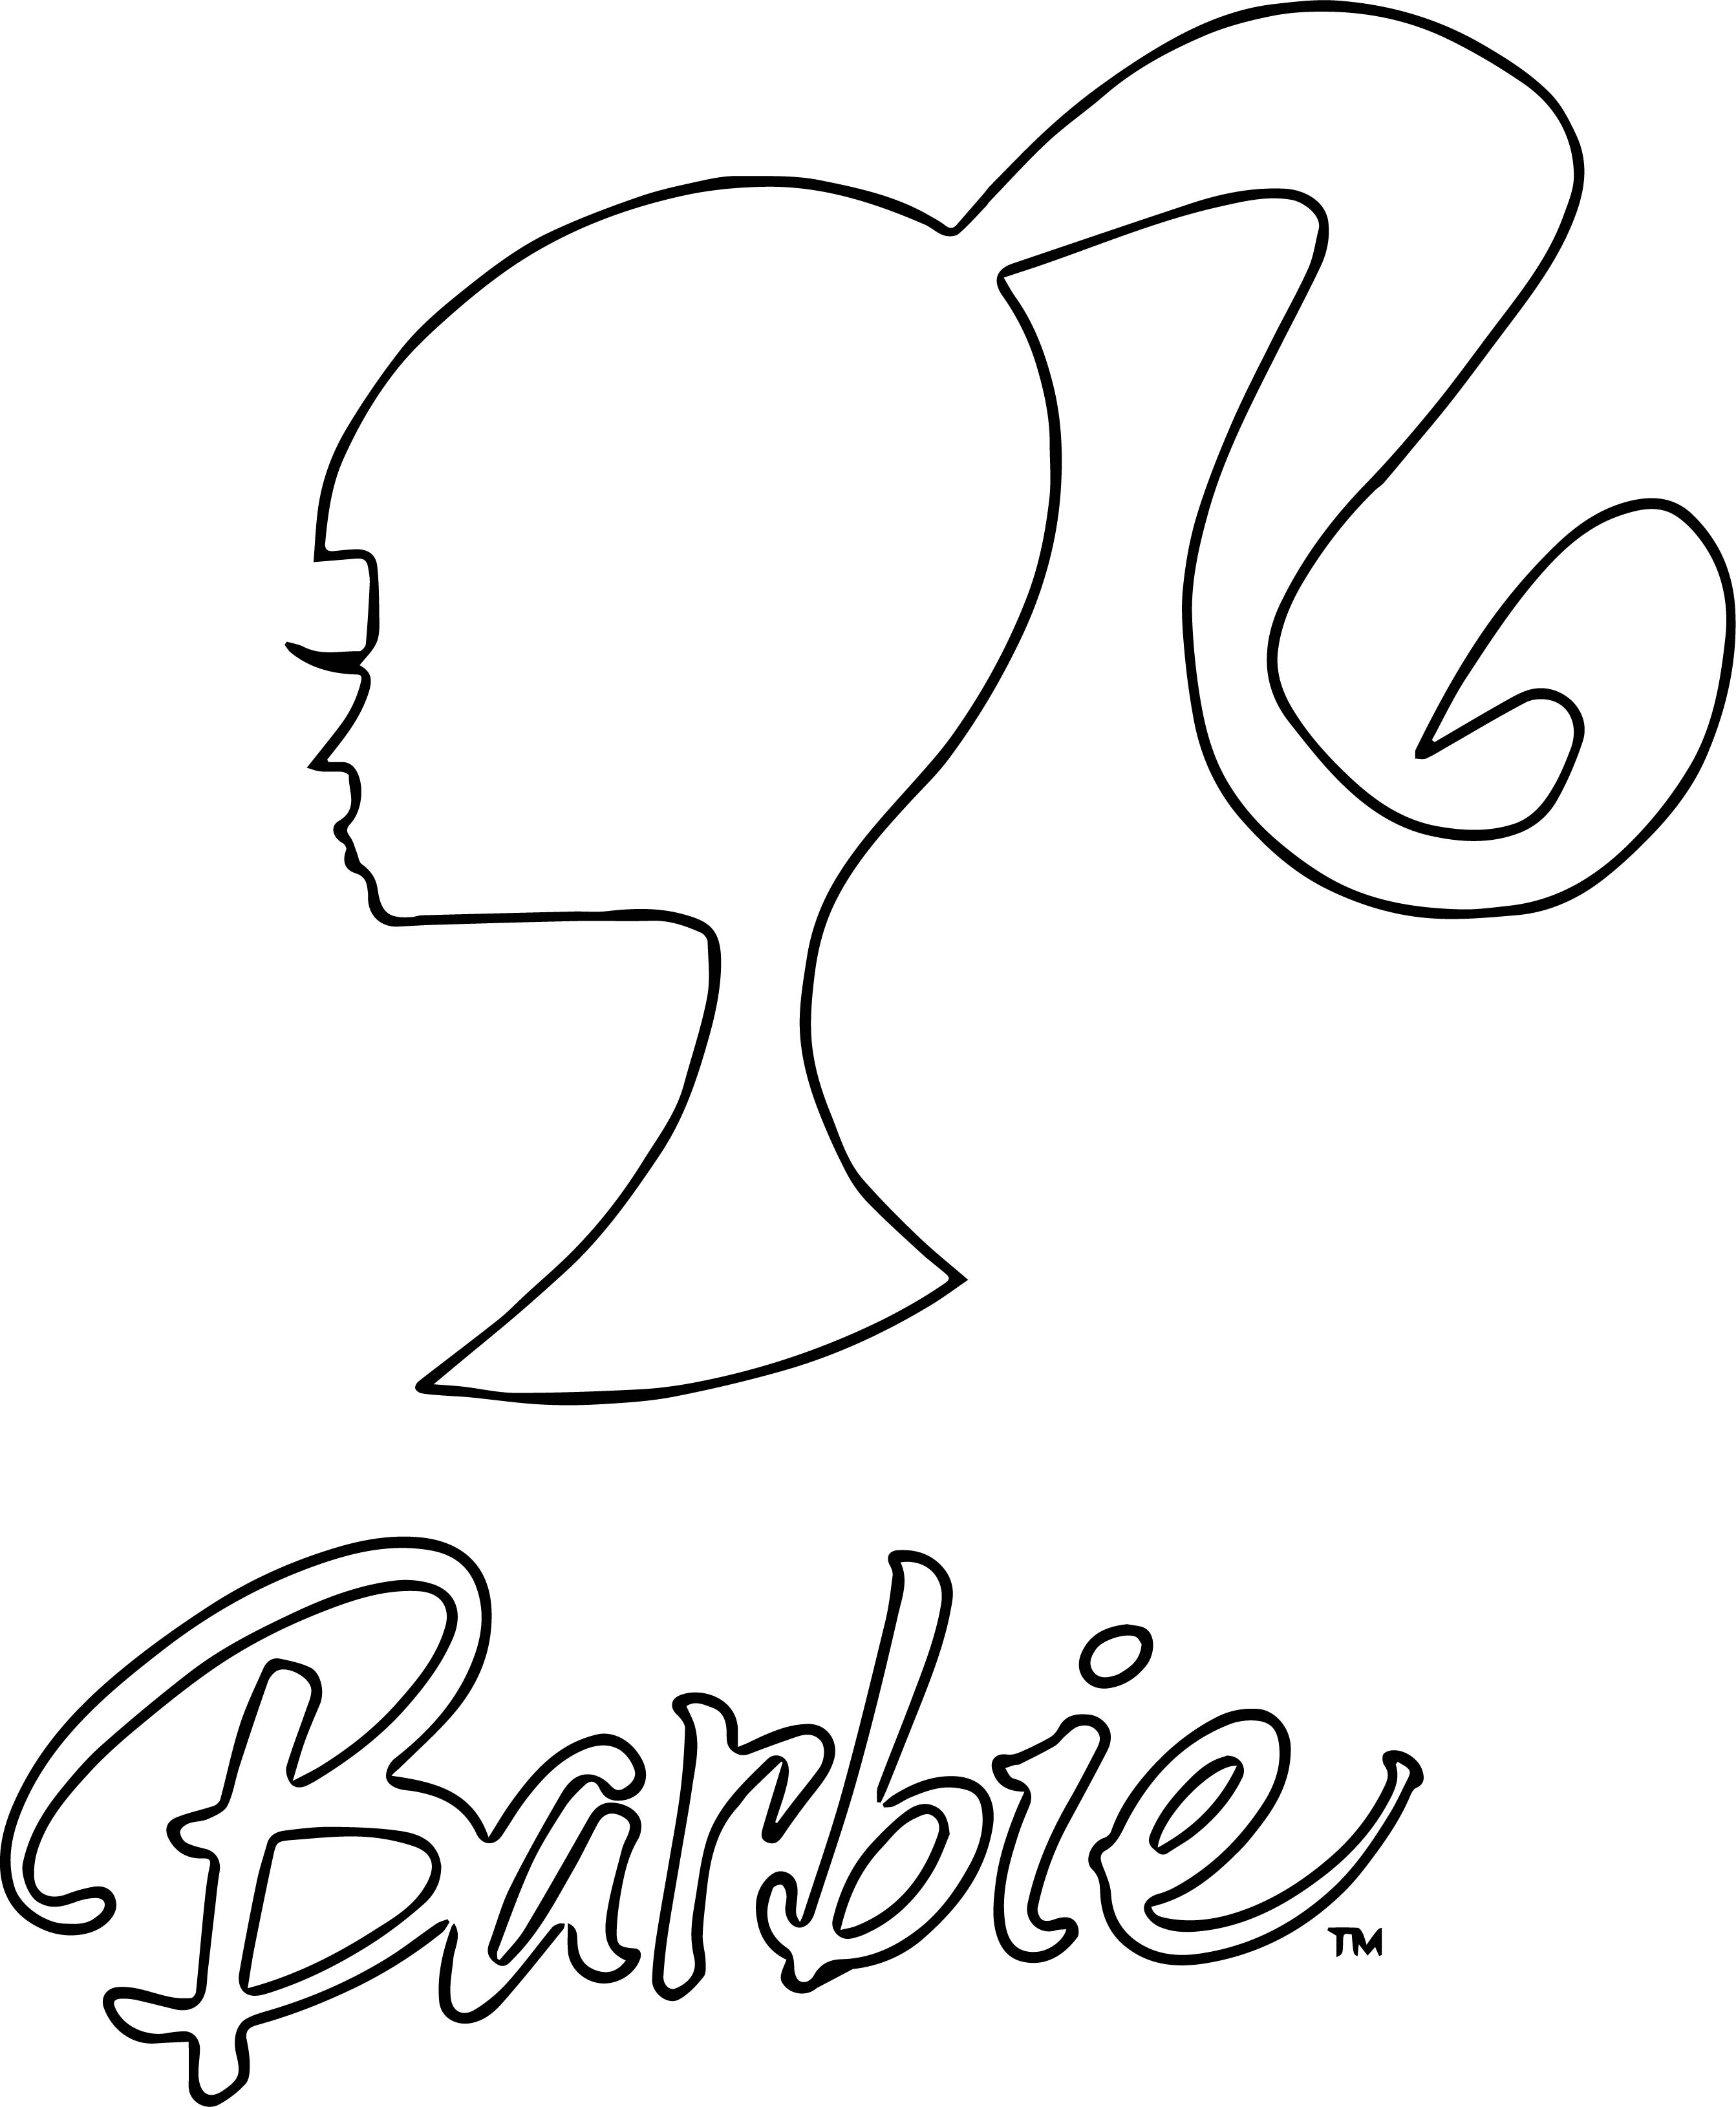 Barbie Logo And Text Coloring Page